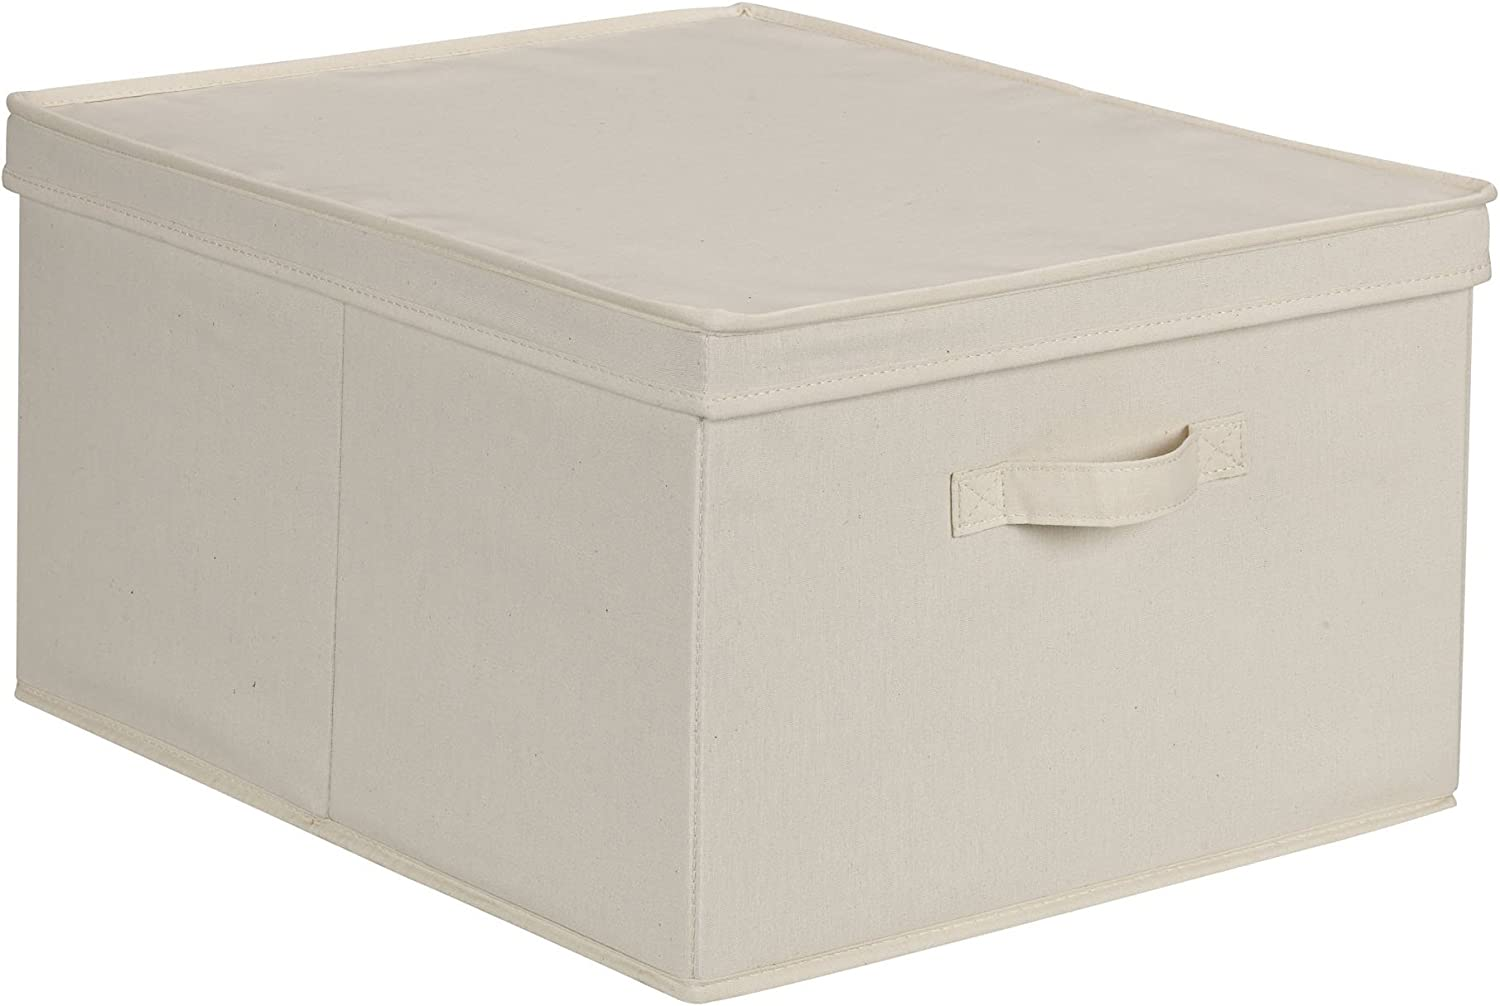 Amazon Com Household Essentials 115 Storage Box With Lid And Handle Natural Beige Canvas Jumbo Home Kitchen